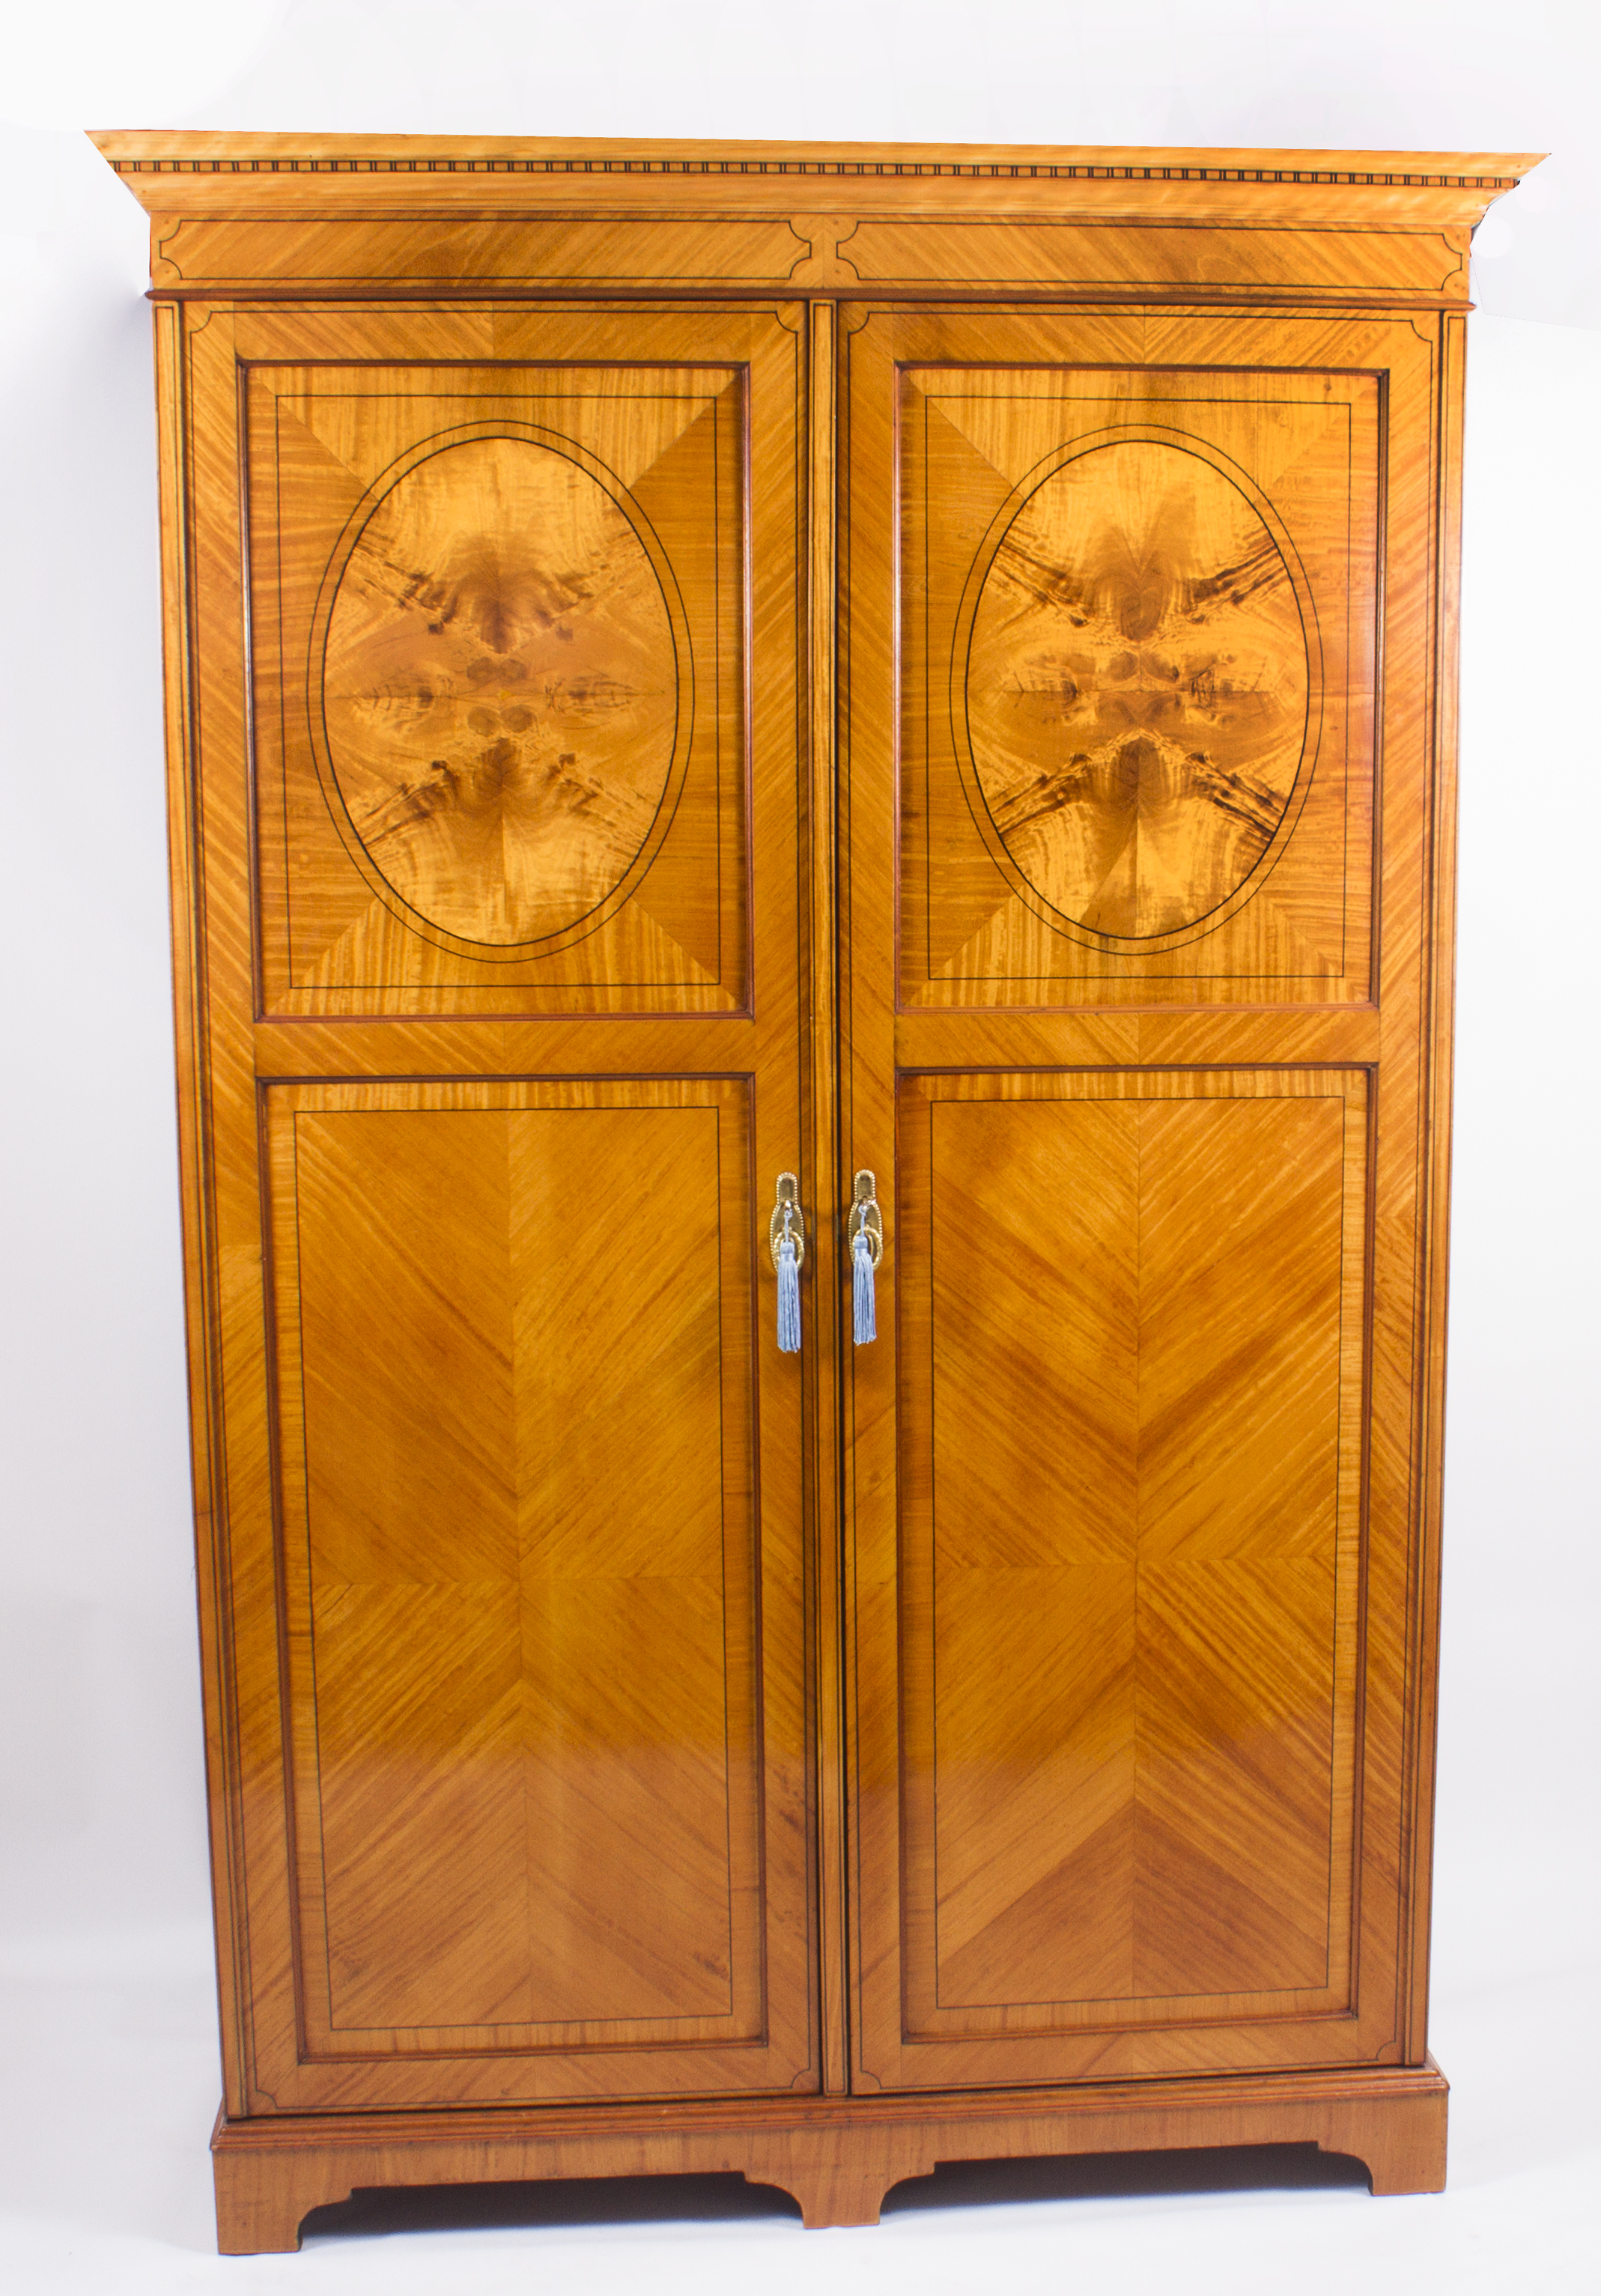 Armoires/wardrobes Edwardian/victorian Wardrobe Beautiful In Colour Antique Furniture